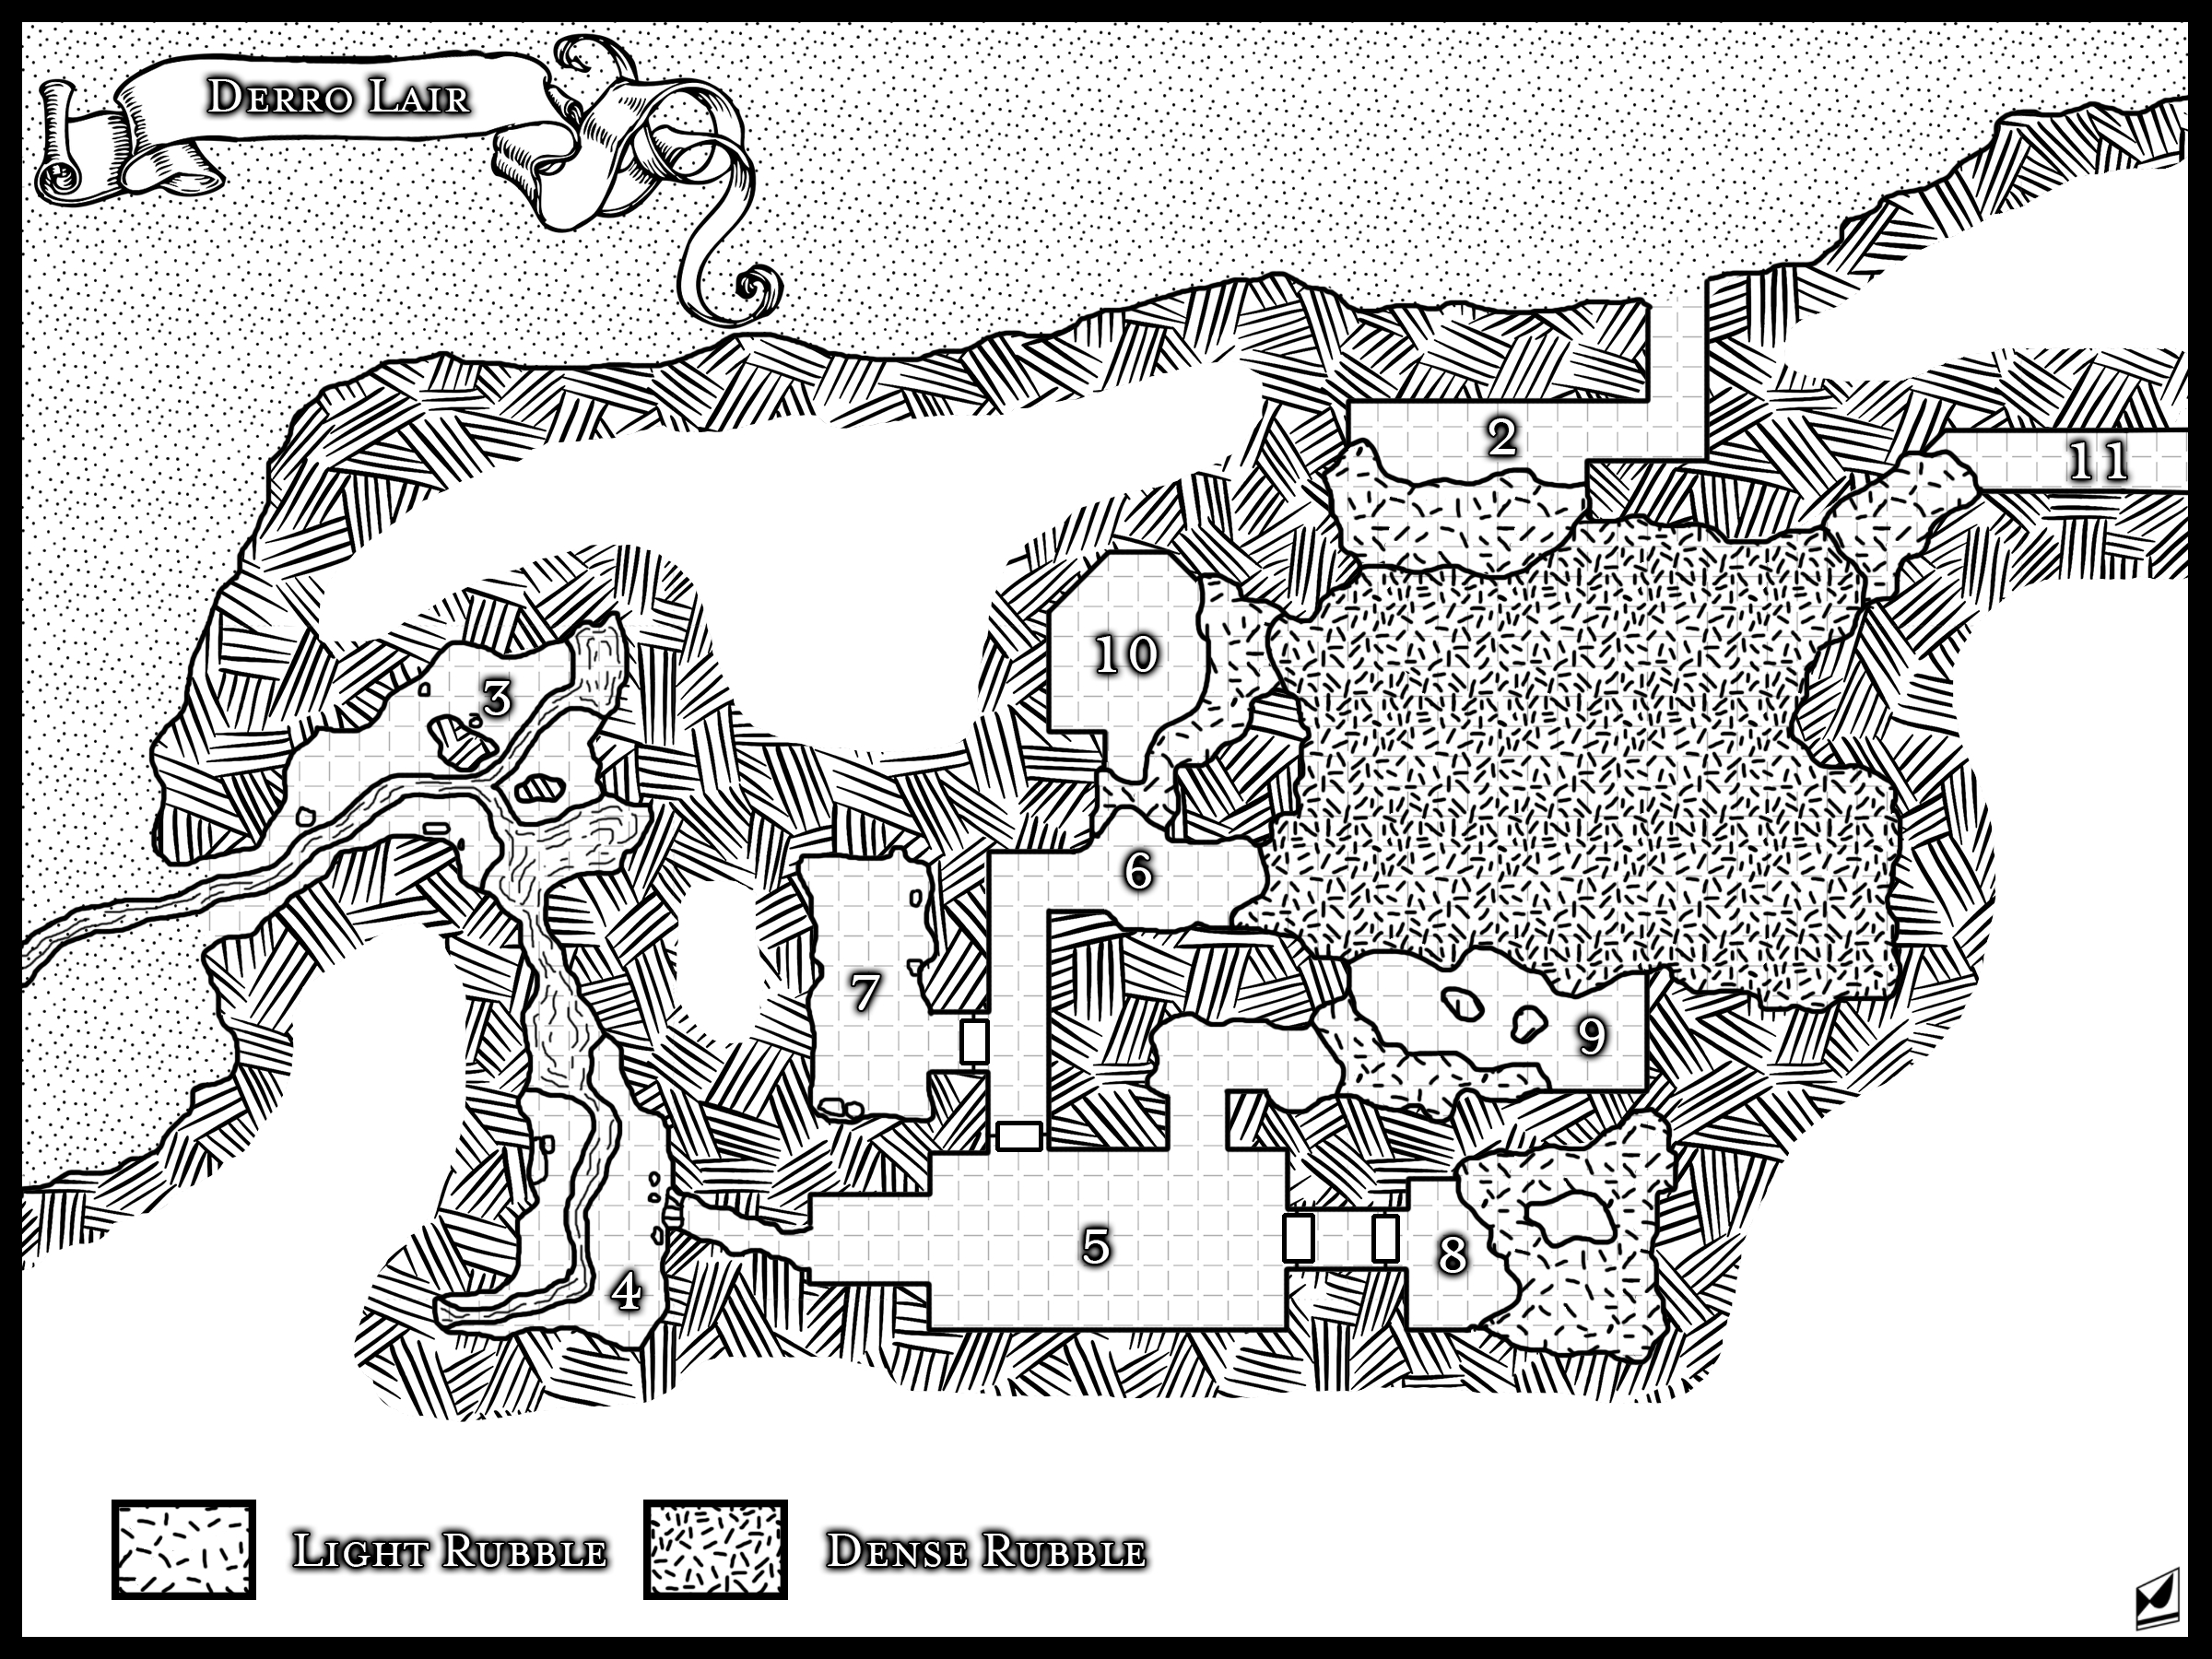 10 Lovable Dungeons And Dragons Campaign Ideas a medium sized cave lair designed for dungeons and dragons based on 1 2020